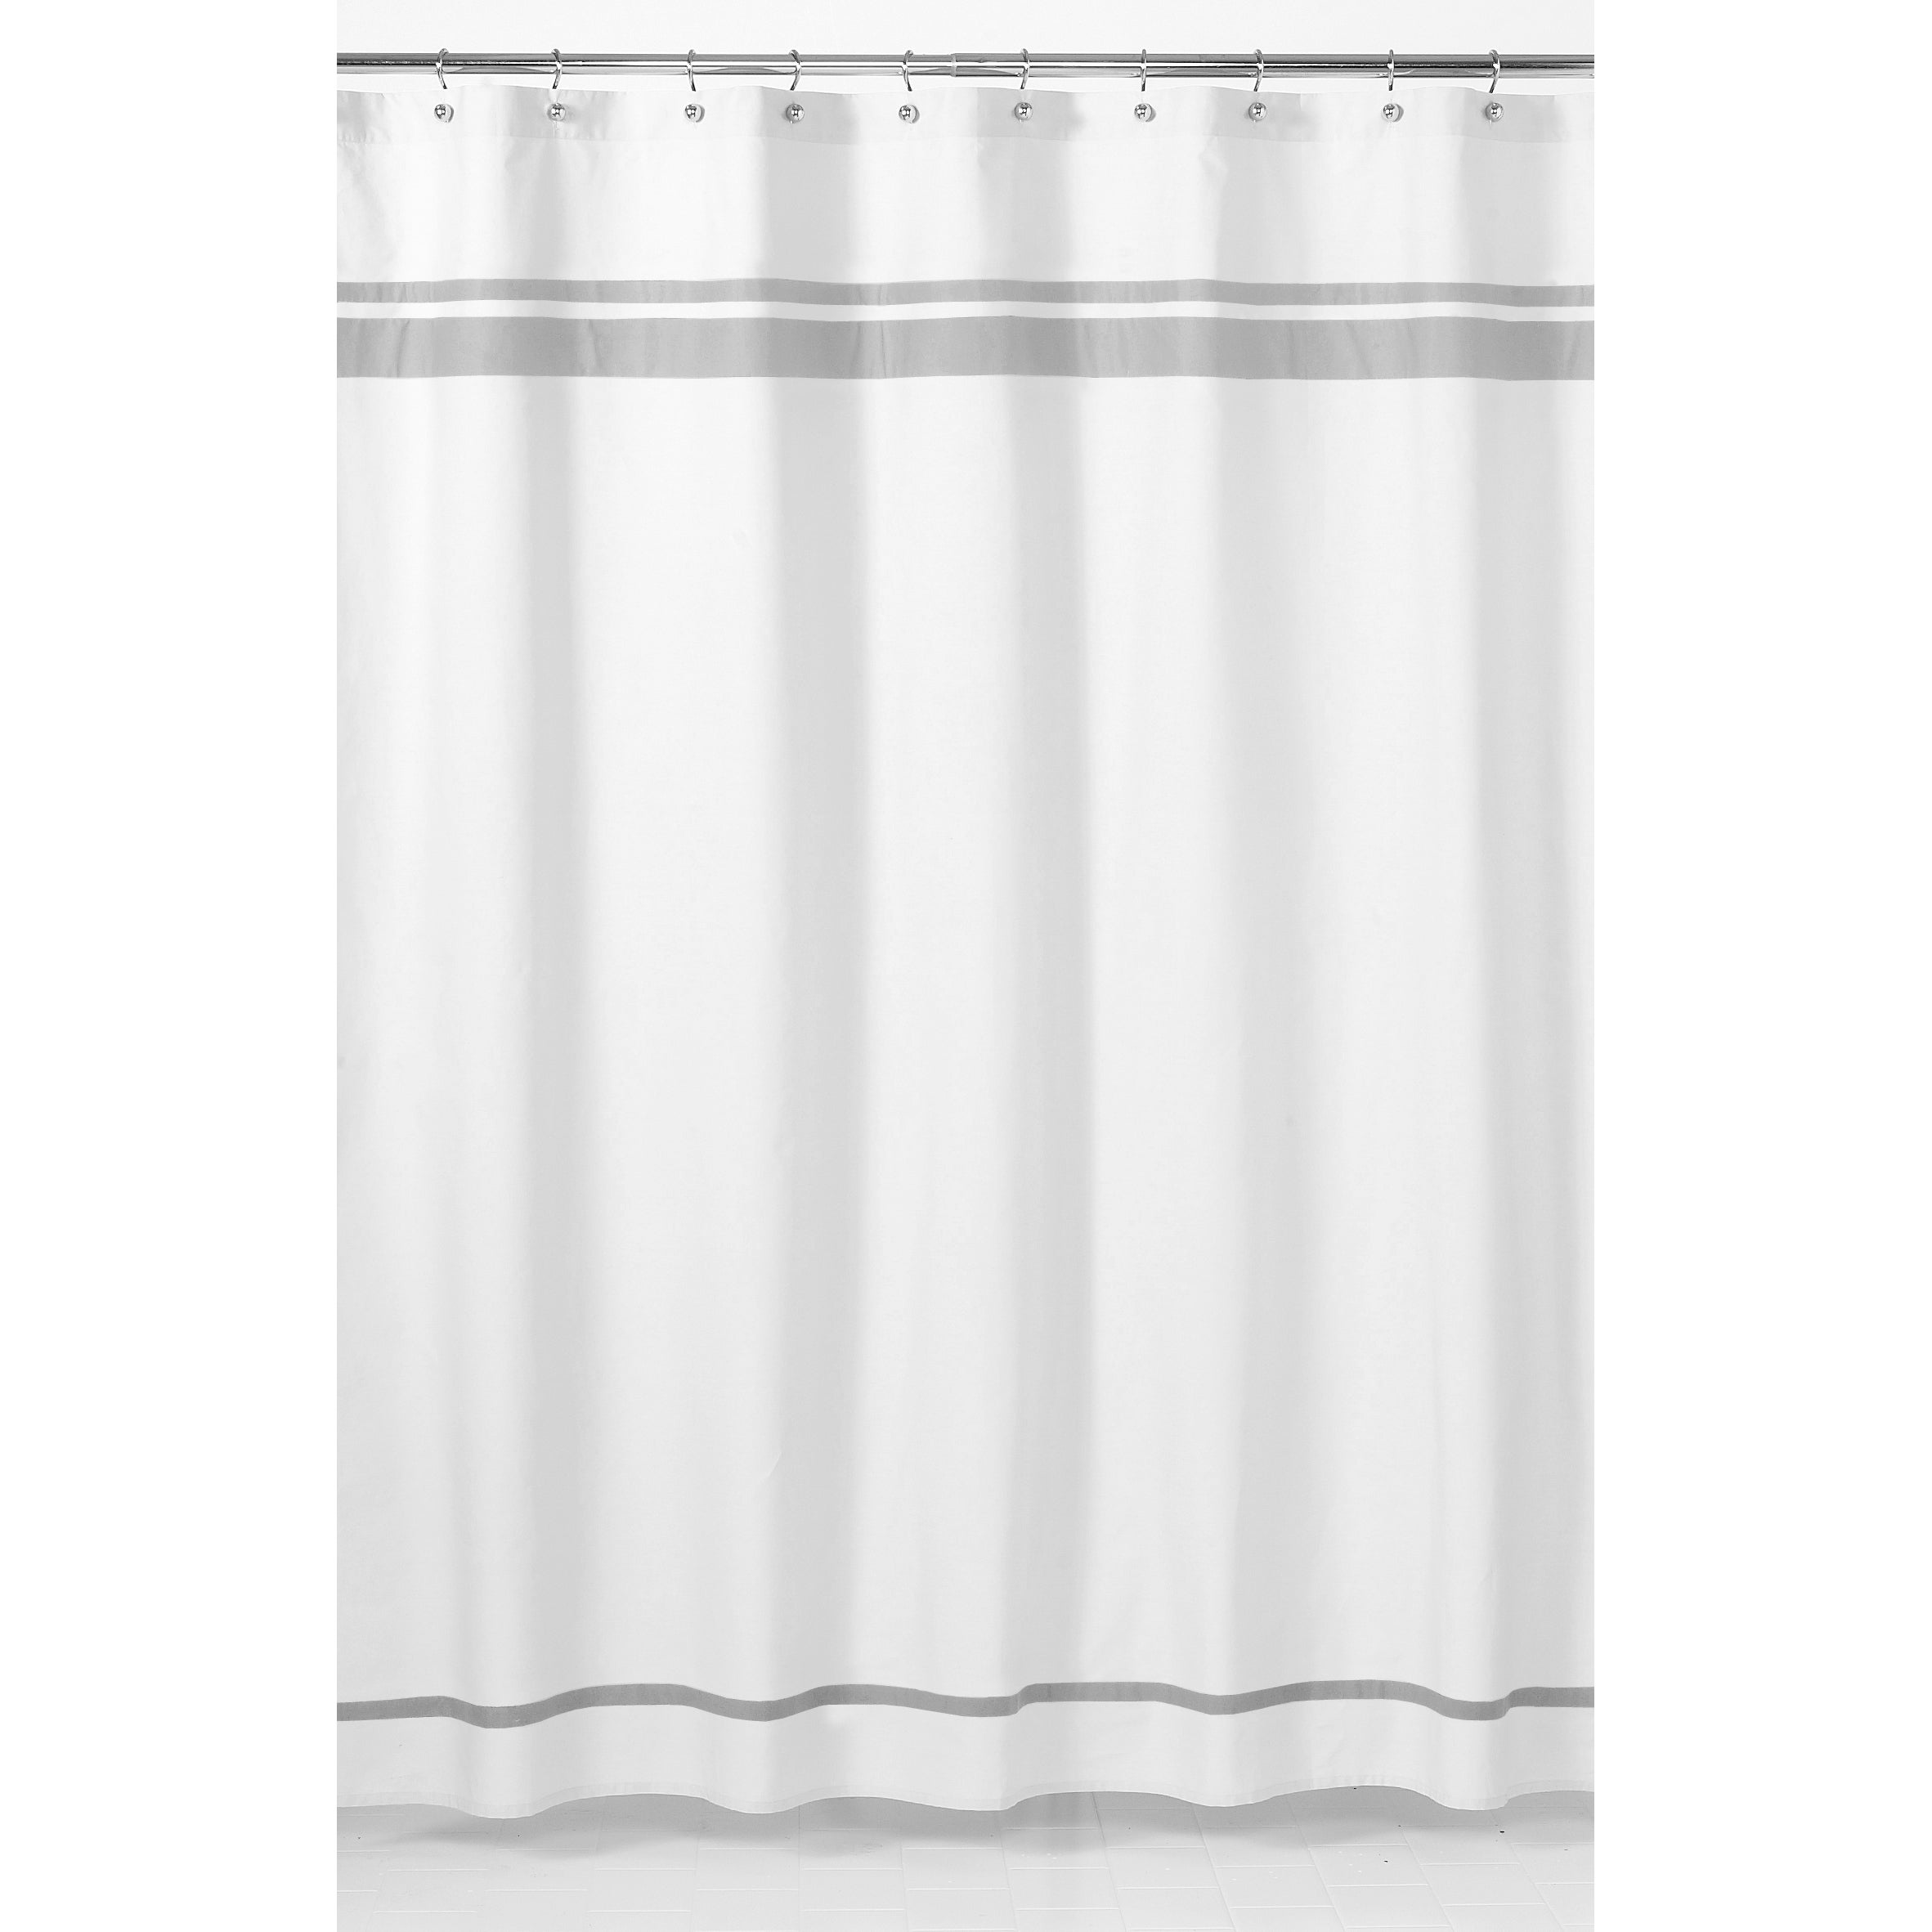 Shop Sweet Jojo Designs White and Grey Hotel Shower Curtain - Free ...